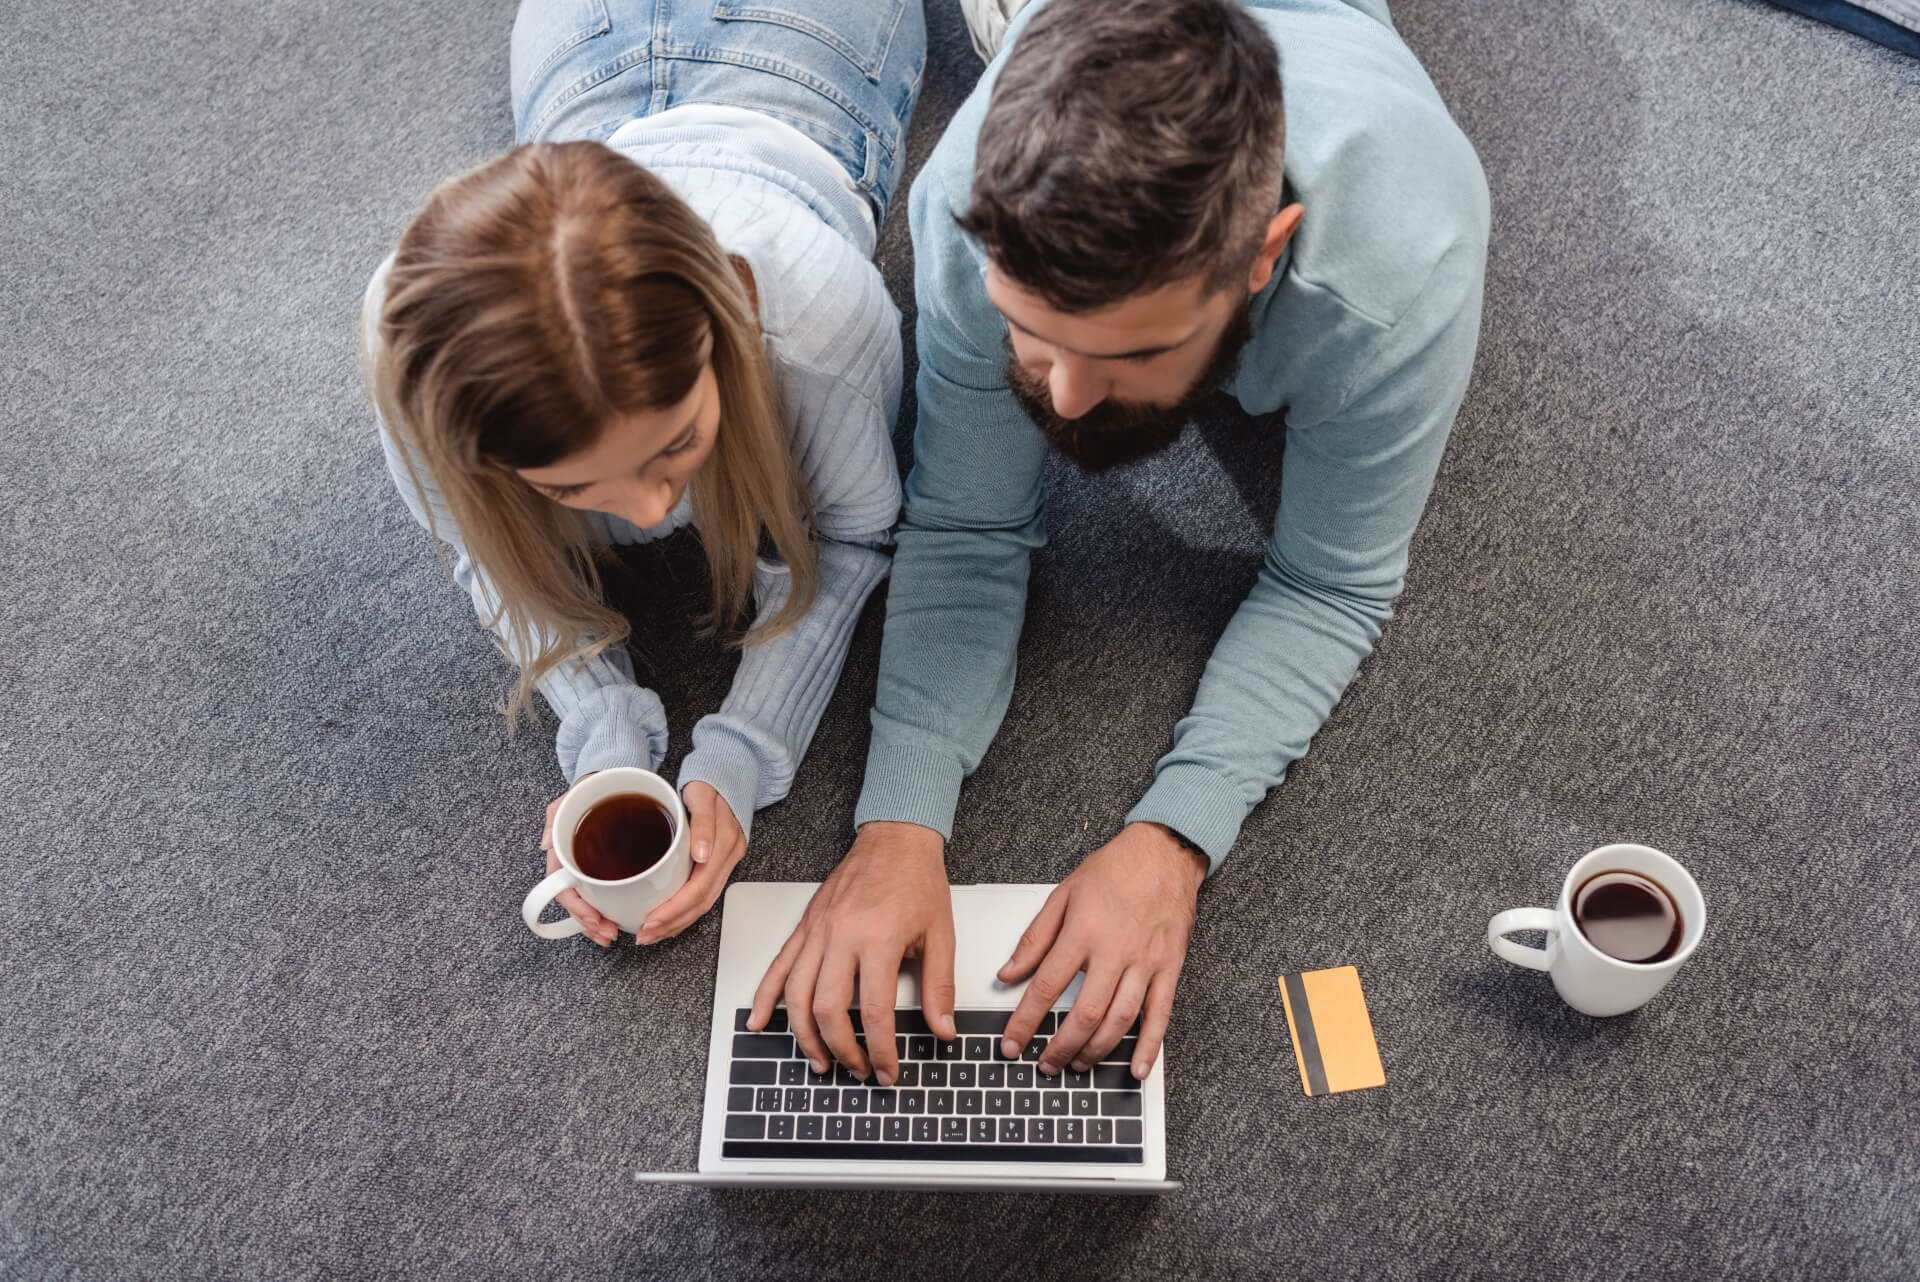 A couple lie on the floor on their laptop with two cups of coffee